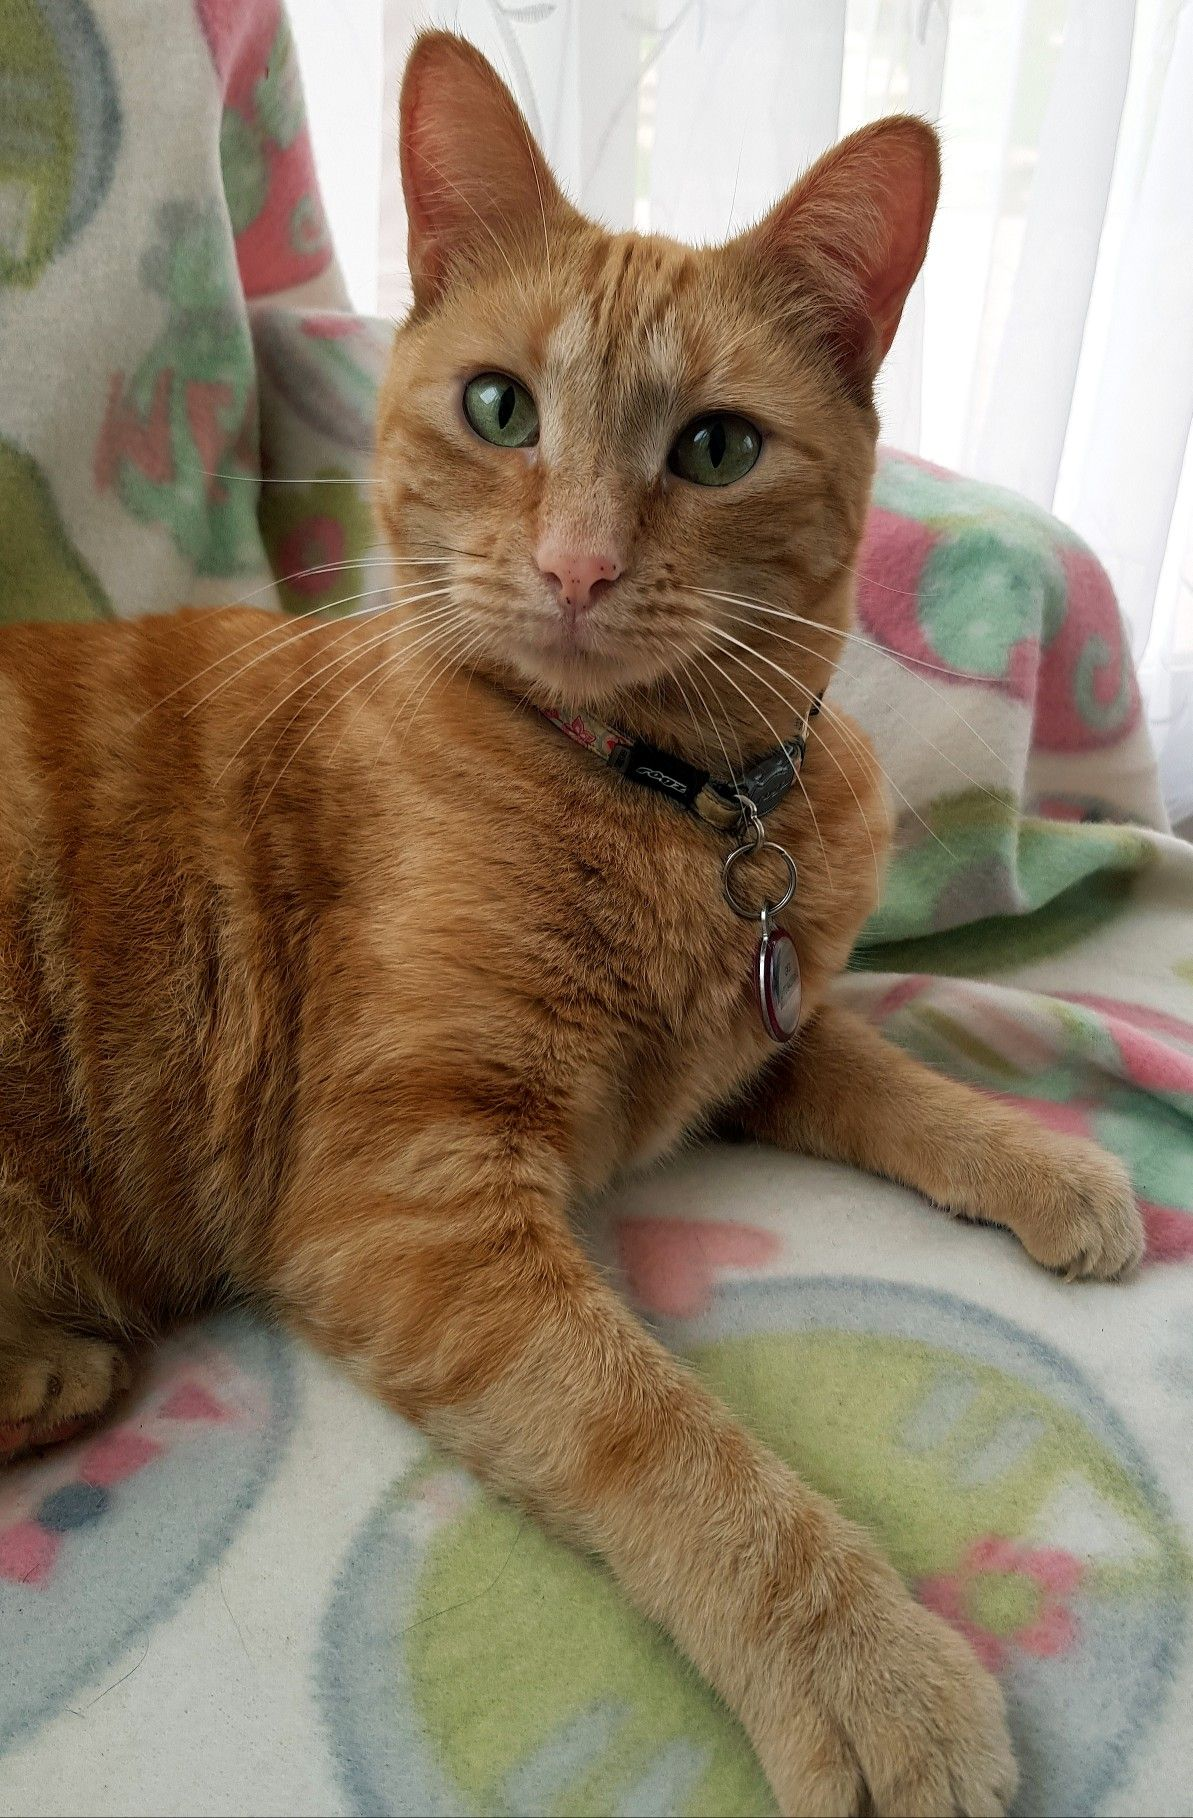 Pin By Evelda Kruger On Kitty Cats Orange Tabby Cats Tabby Cat